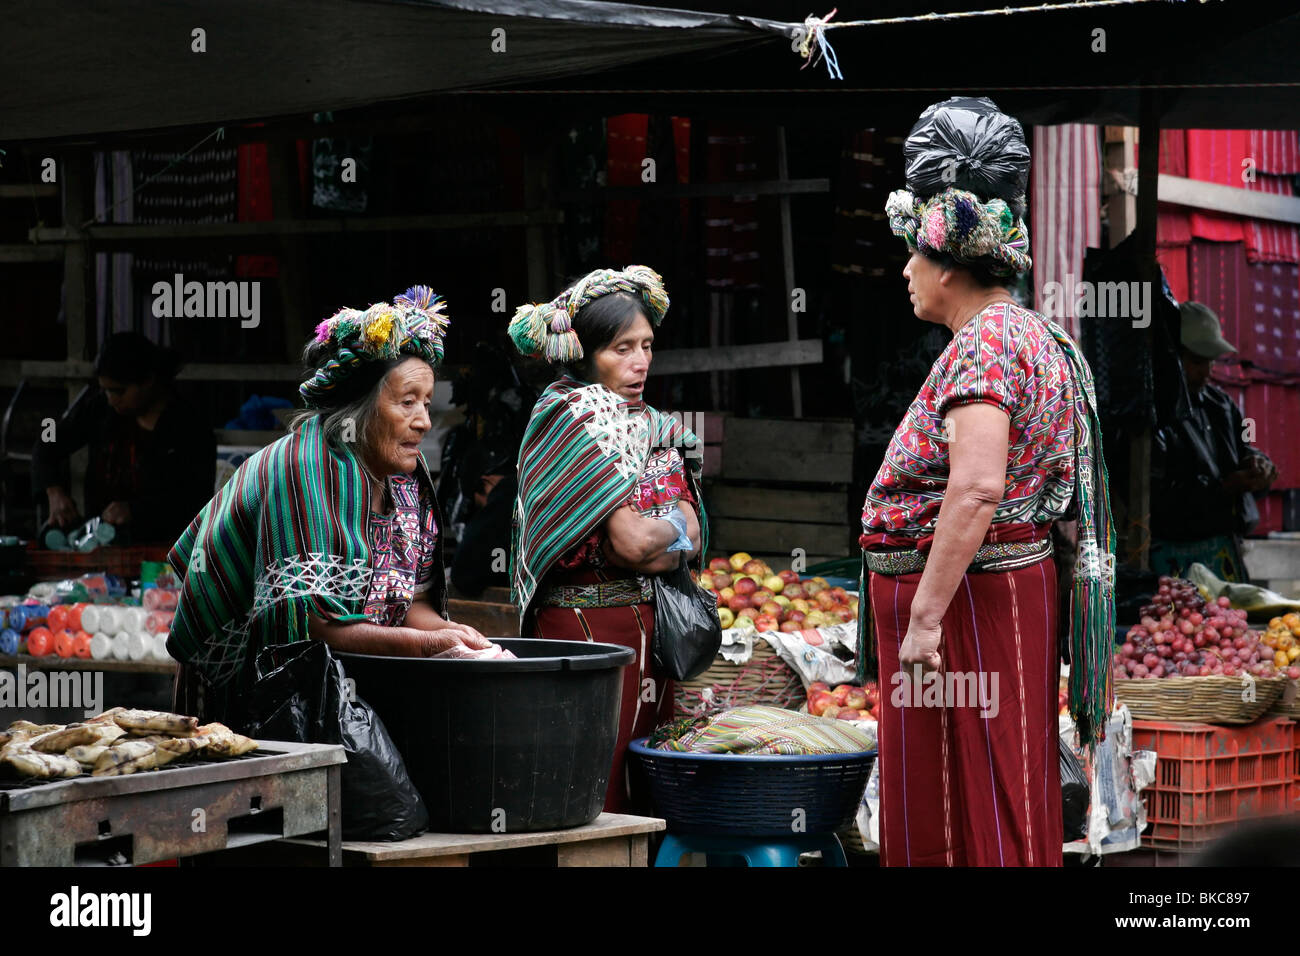 Ixil Maya women dressed in traditional clothes at the market in Nebaj, Guatemala, Central America - Stock Image